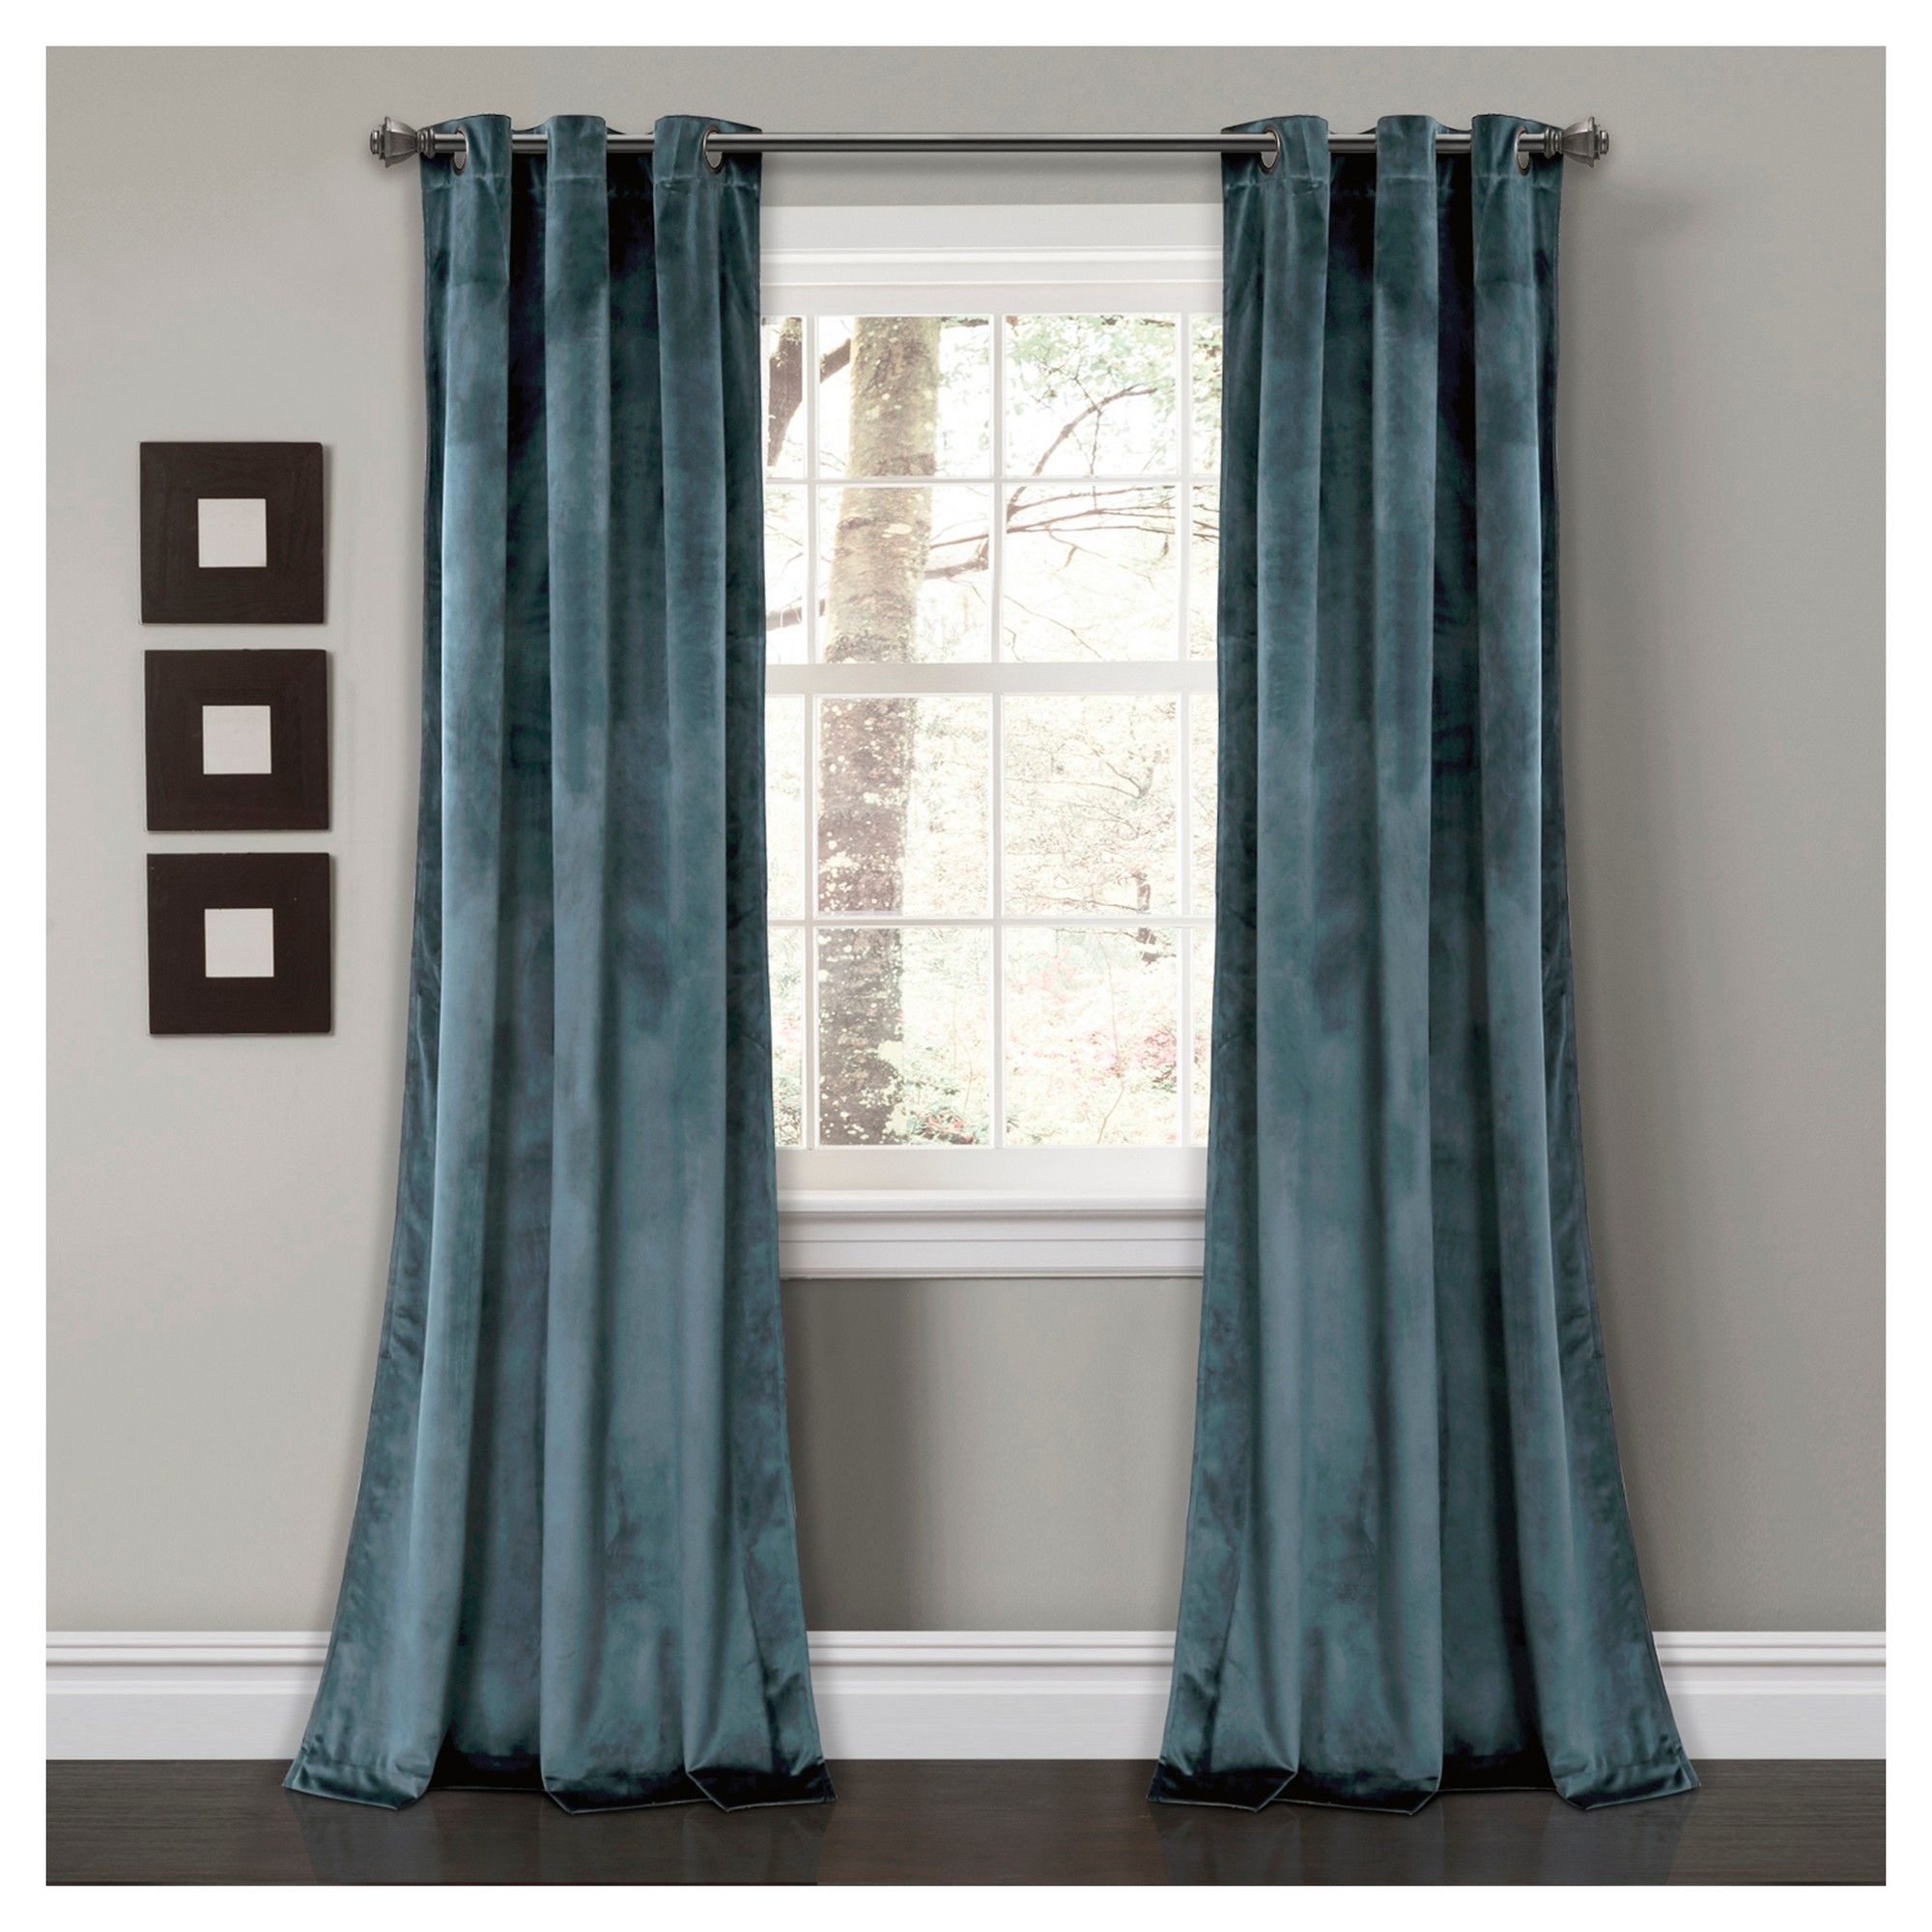 84 L Pair Bedroom Dining Lush Decor Prima Velvet Curtains Color Block Room Darkening Window Panel Set for Living Blue